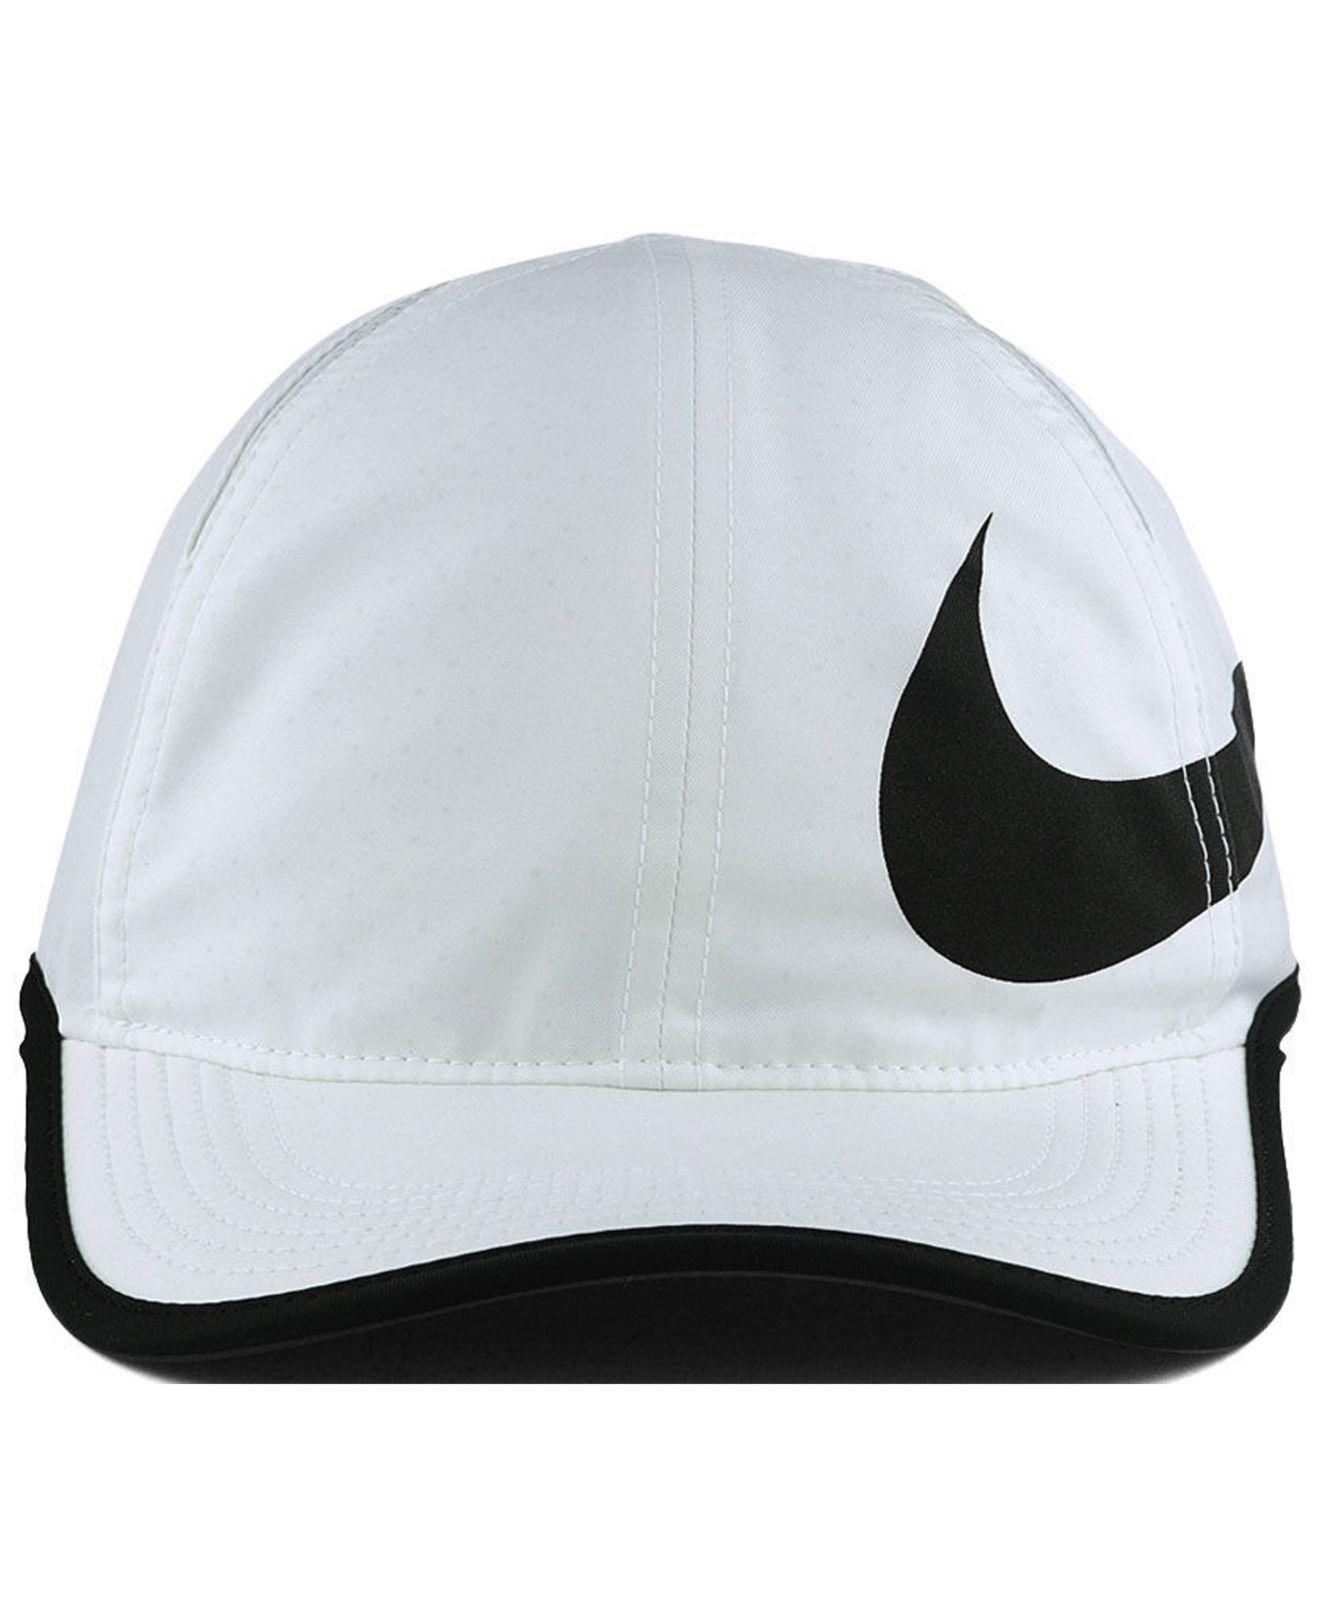 finest selection 9bf67 004d7 Nike Featherlight Swoosh Cap in White for Men - Lyst